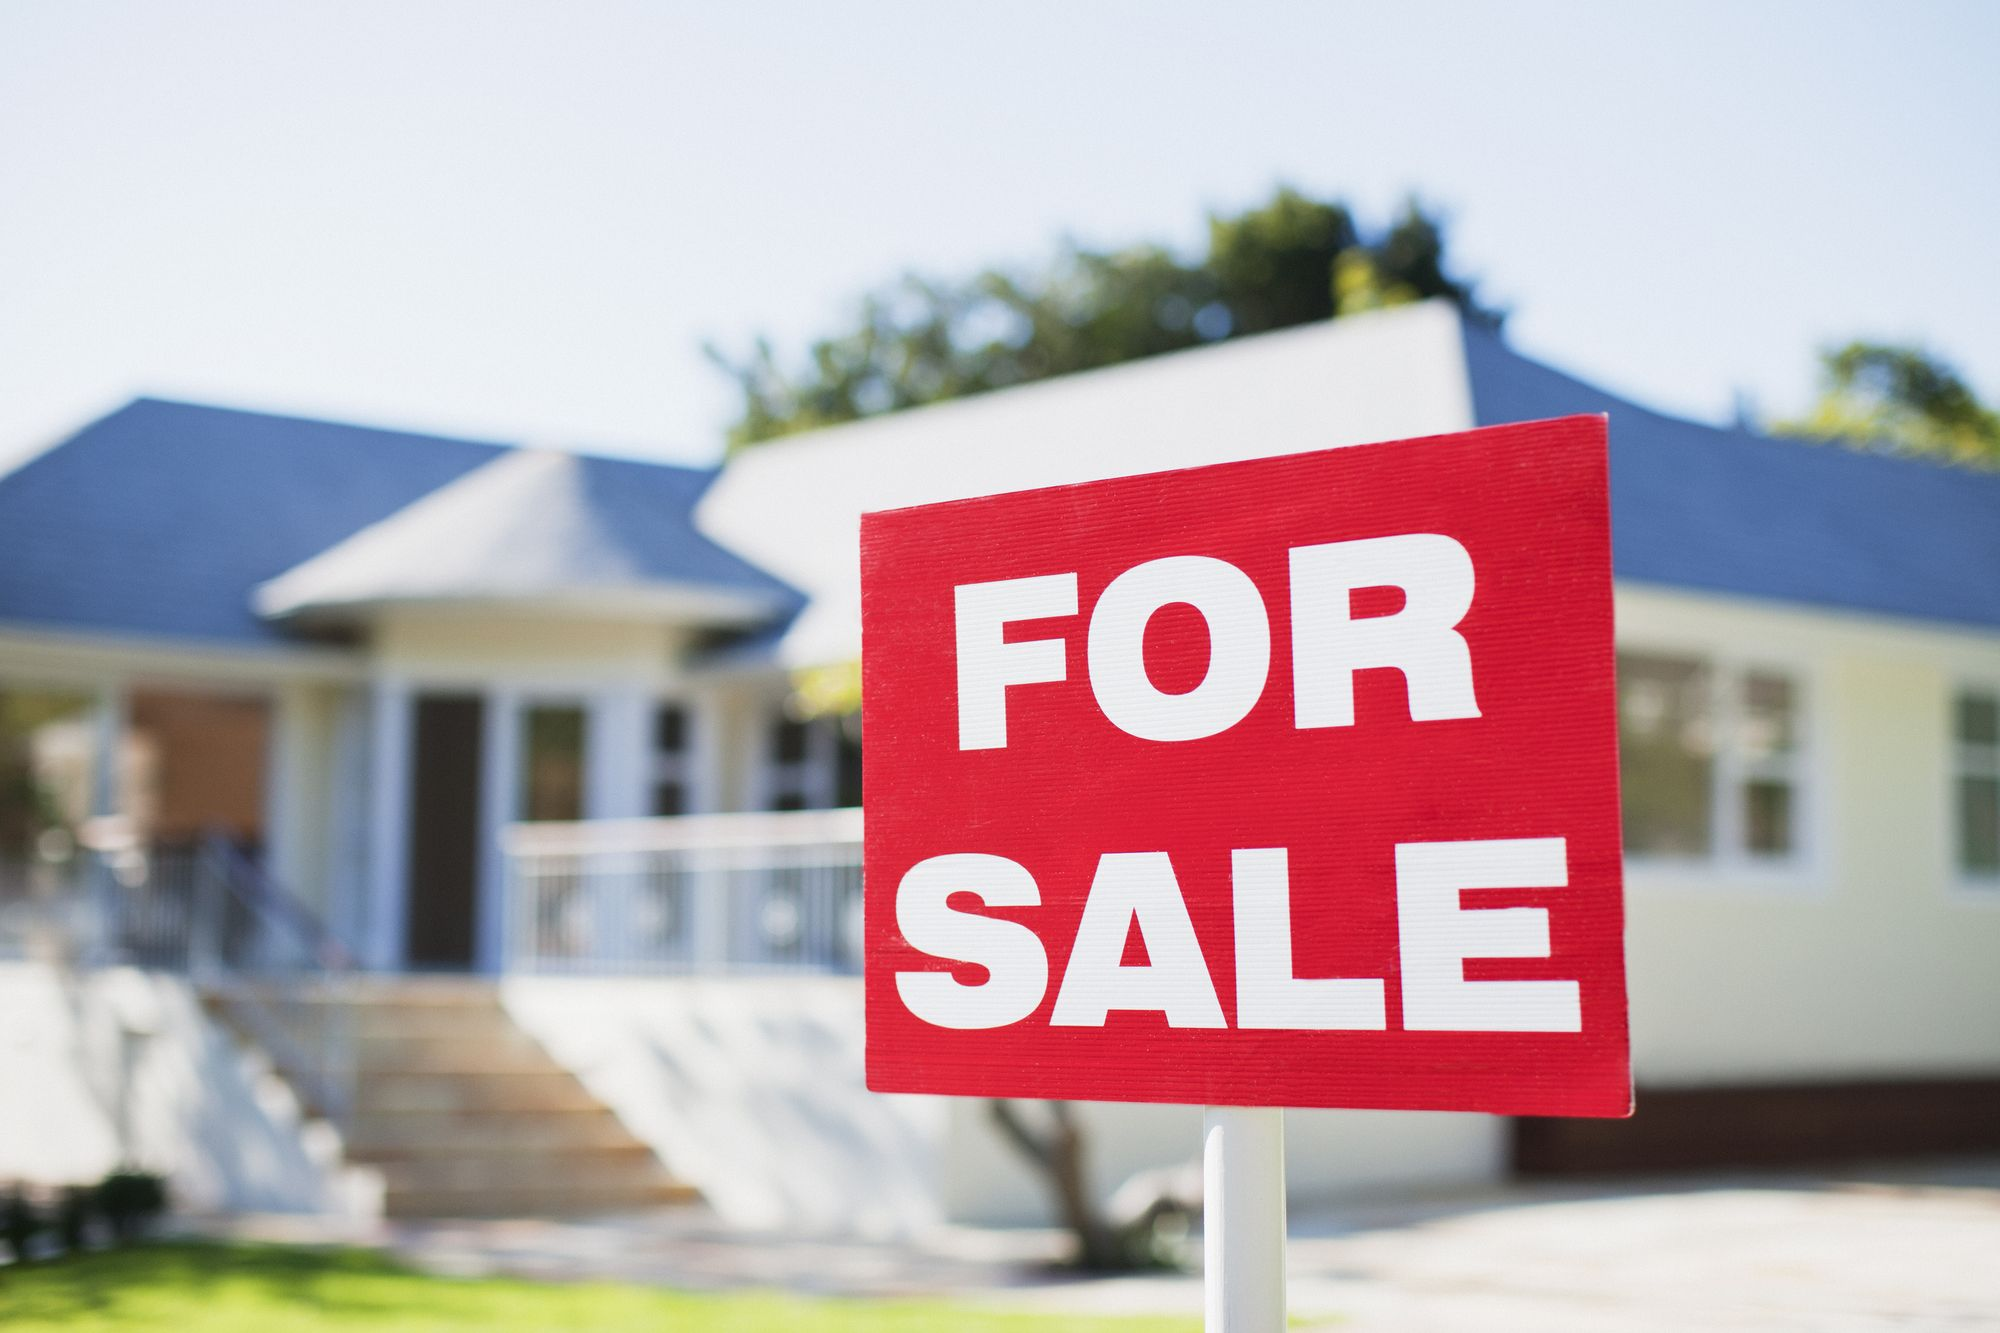 Stock Market Manages to Stay Steady Despite Rise in Unemployment Claims and Fall in Home Sales